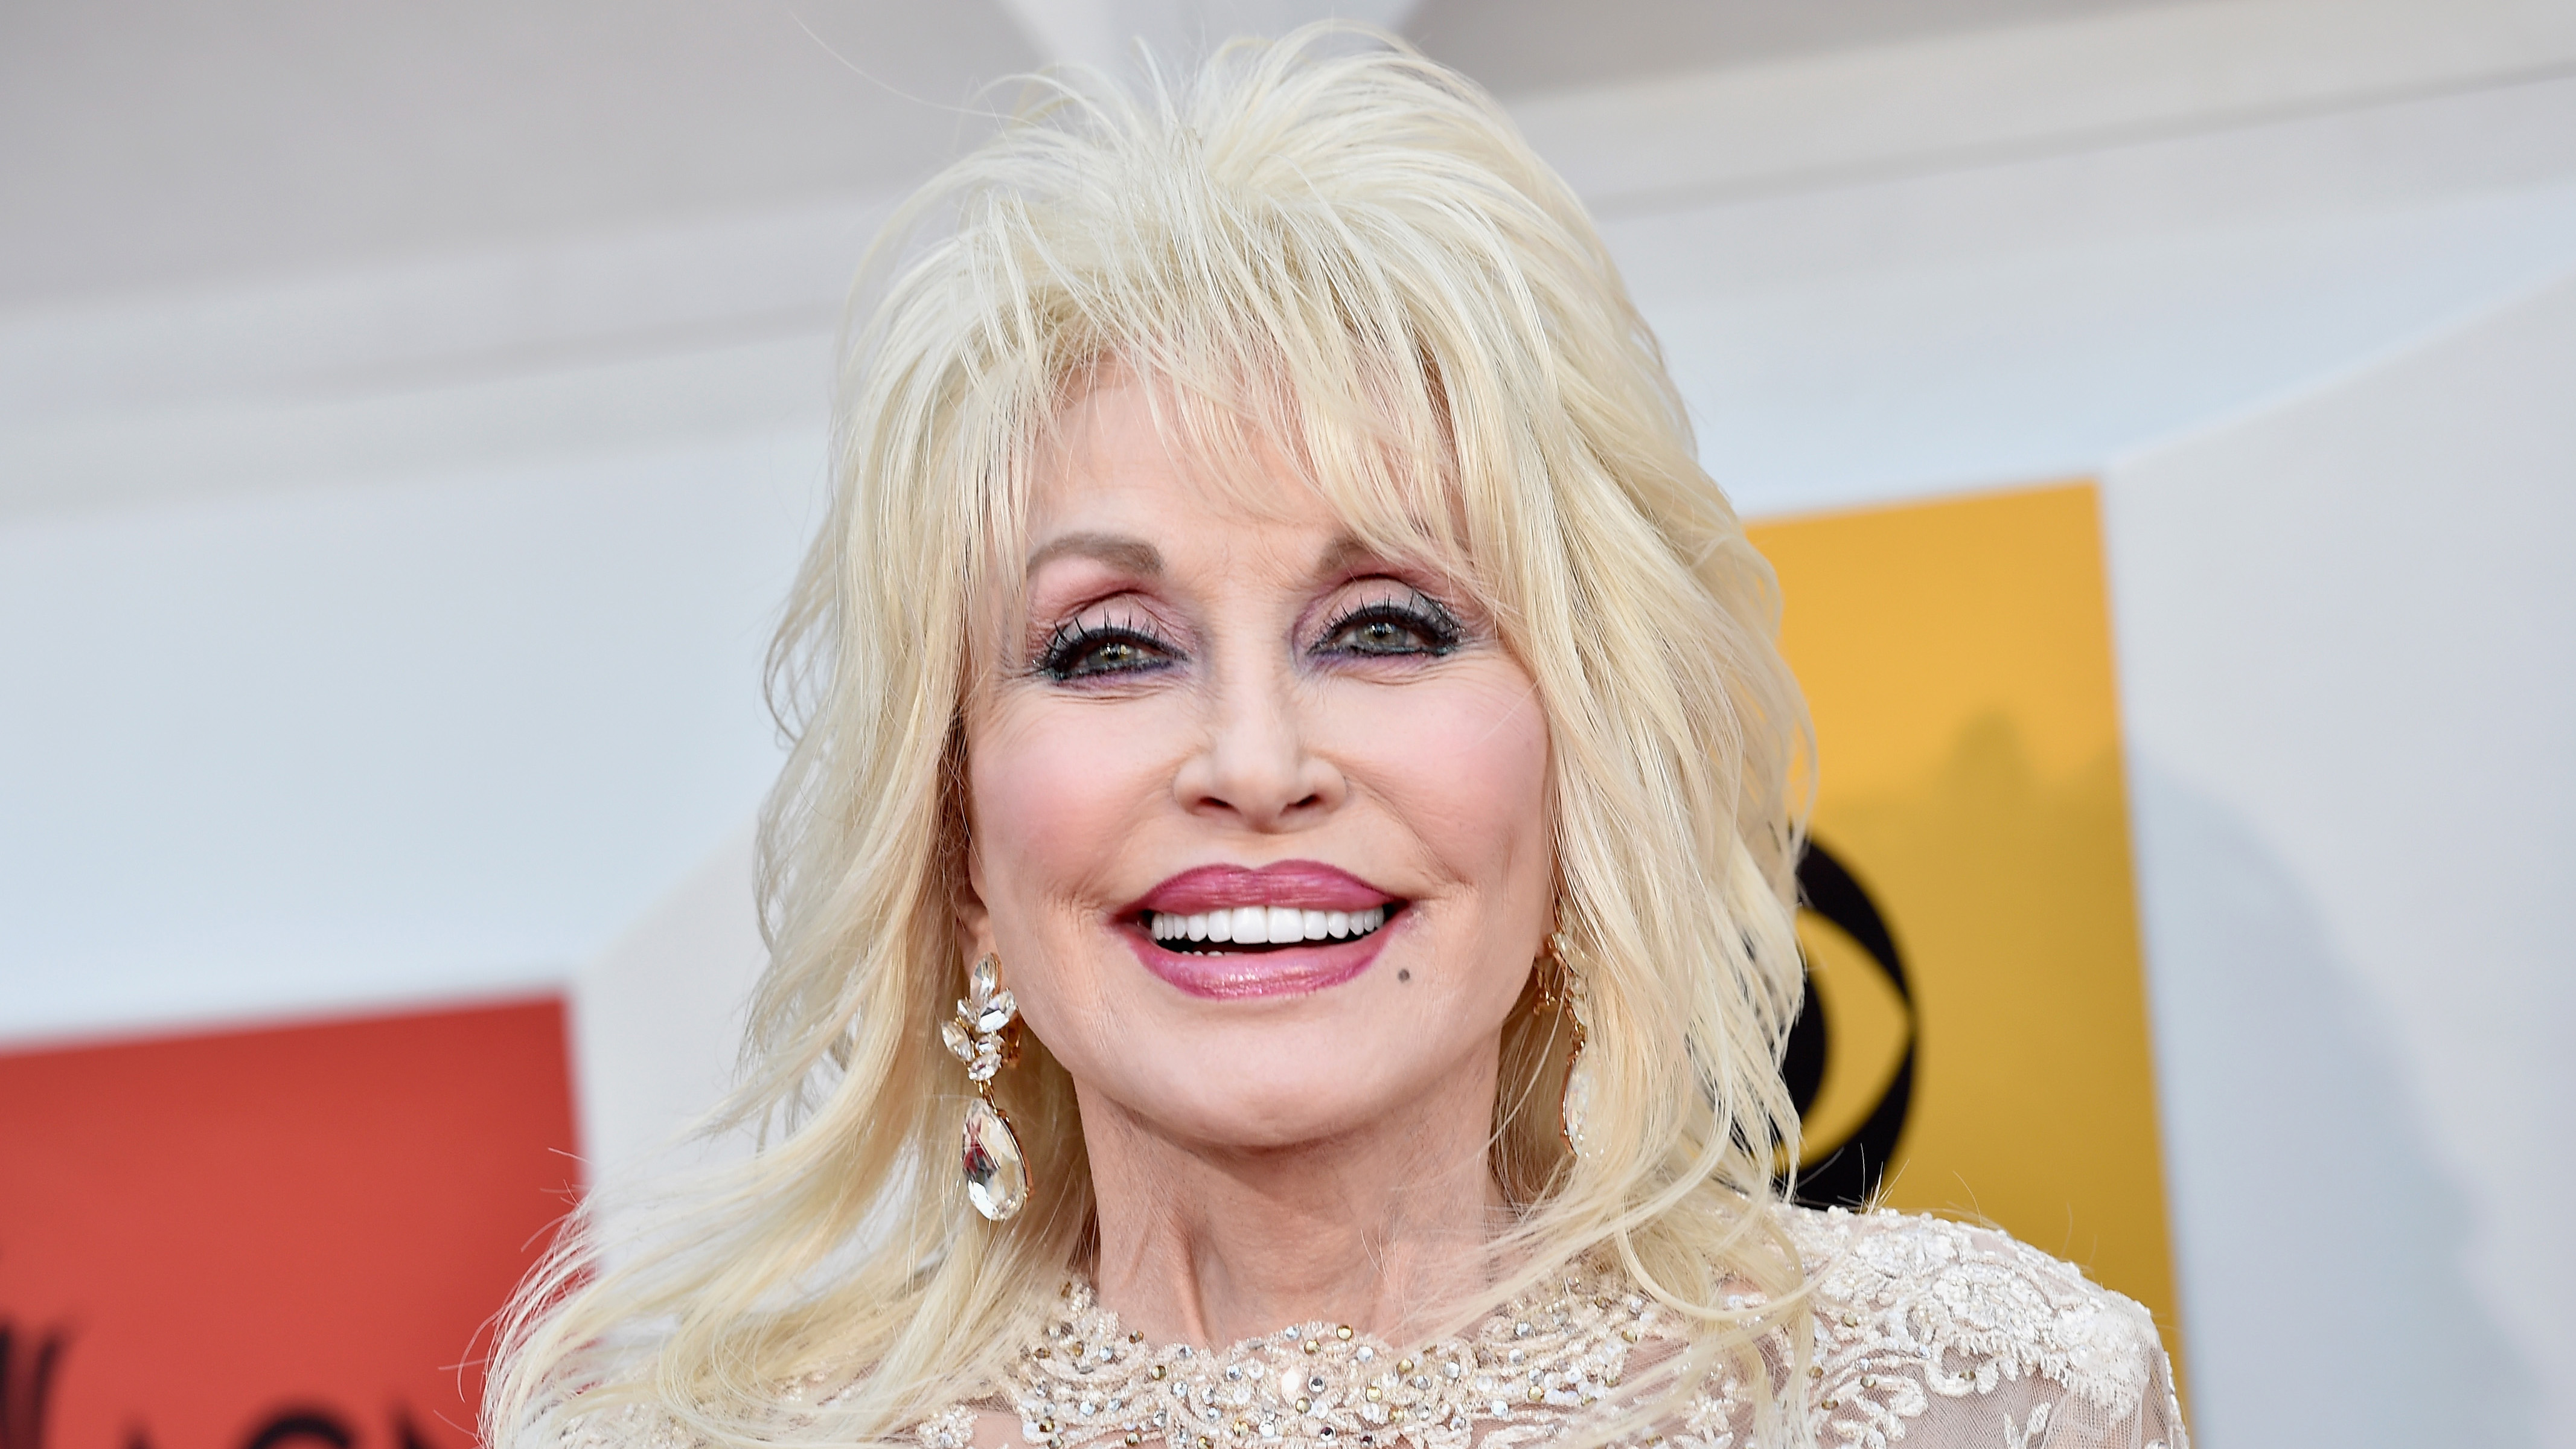 Leave It To Dolly Parton To Find A Way To Better Serve